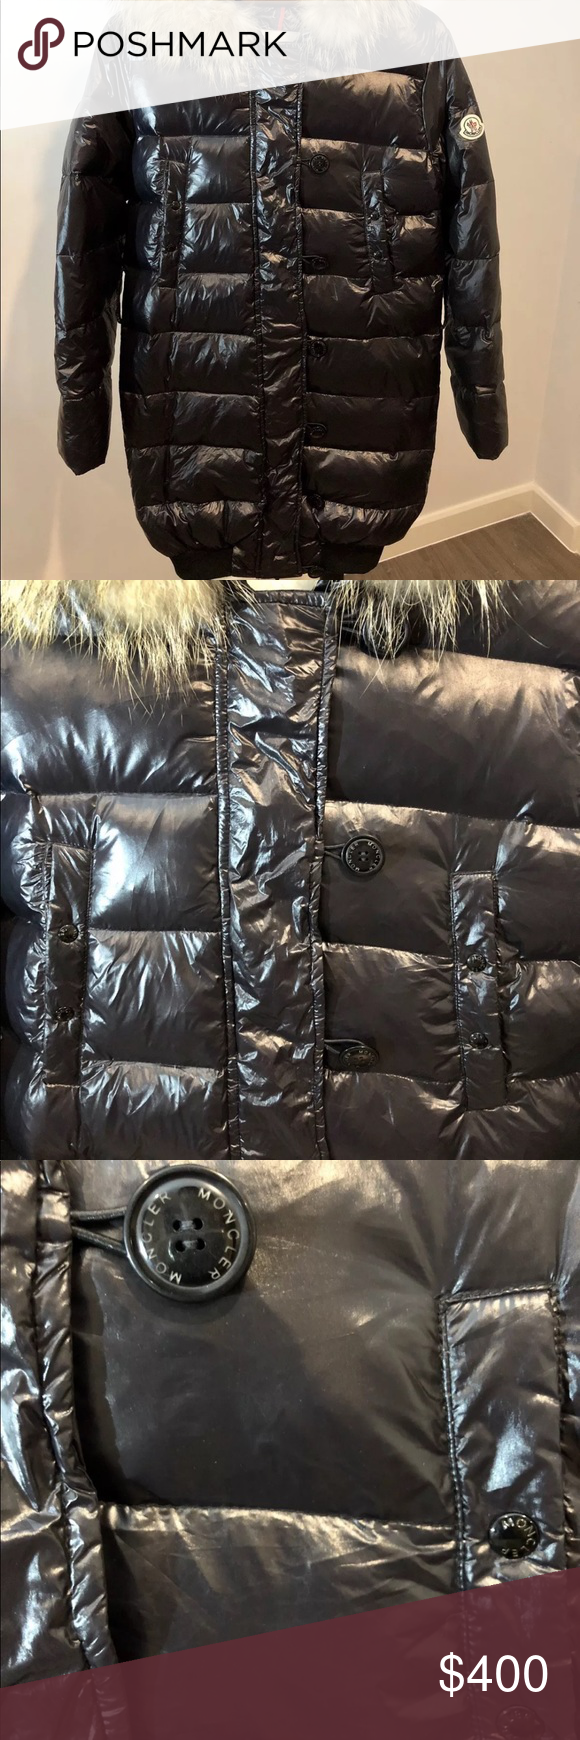 Authentic moncler down fur jacket Authentic moncler down